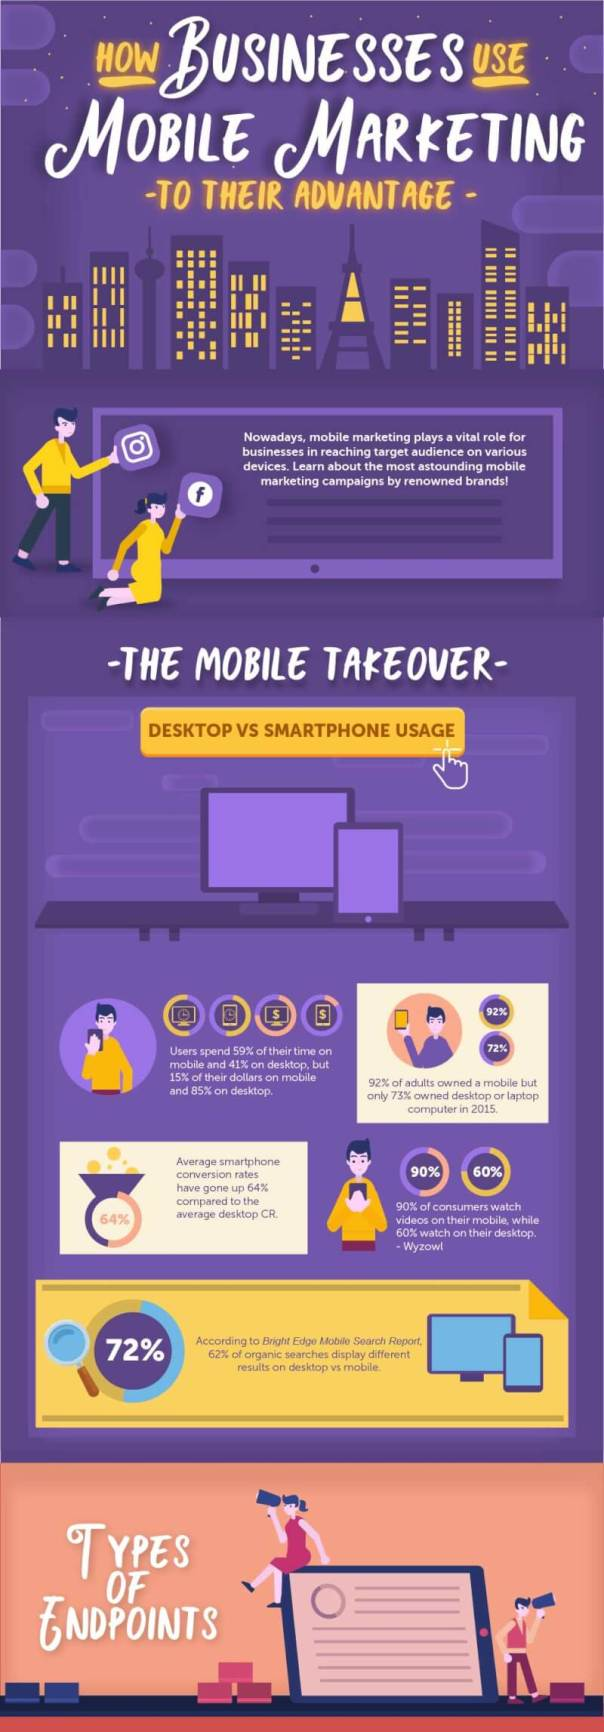 How-a-Business-Can-Use-Mobile-Marketing-to-its-Advantage-[Infographic]_01